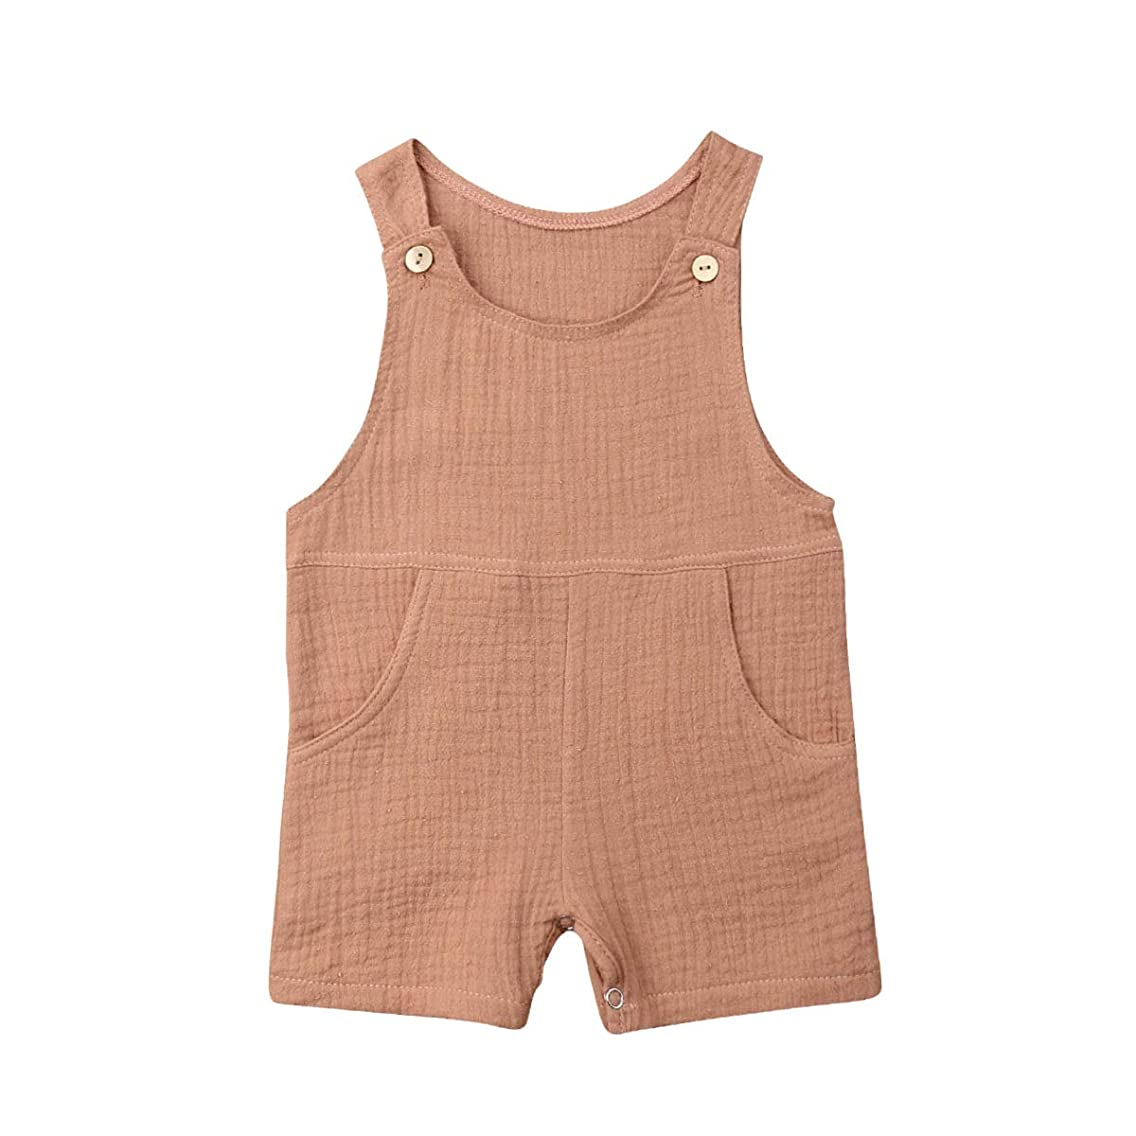 xueliangdedianpu Baby Boys Summer Vest Pocket Solid Color Seersucker Romper Overalls One Piece Outfits for Infant Toddler